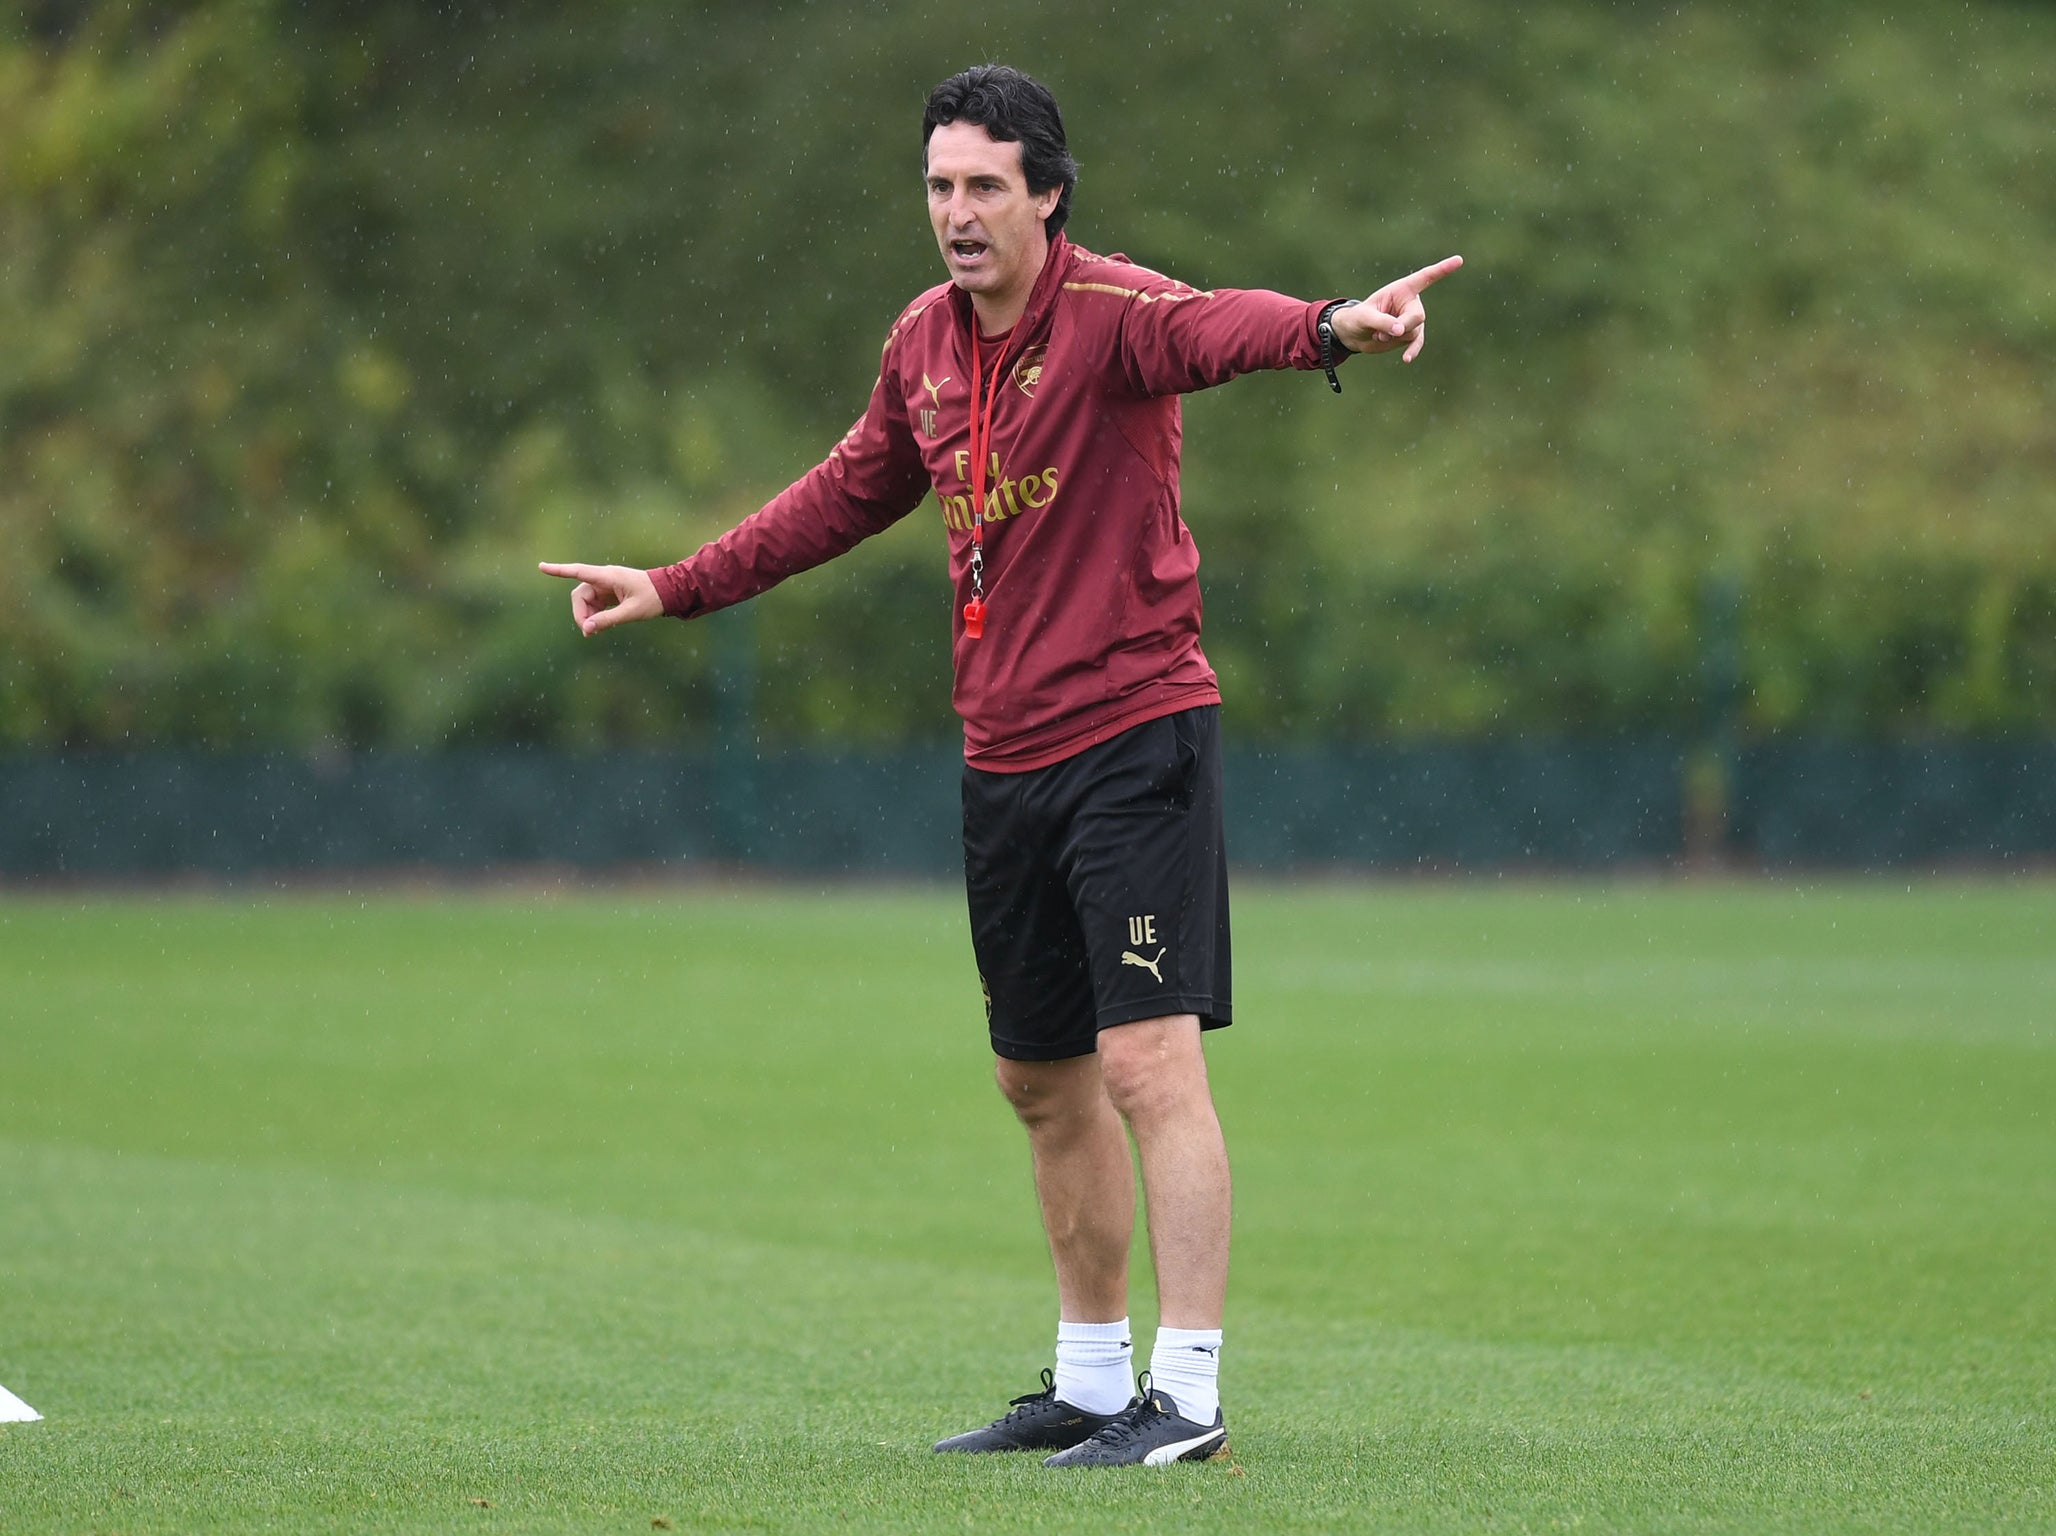 Arsenal news: Unai Emery quietly confident that he can finally end long losing streak to Pep Guardiola